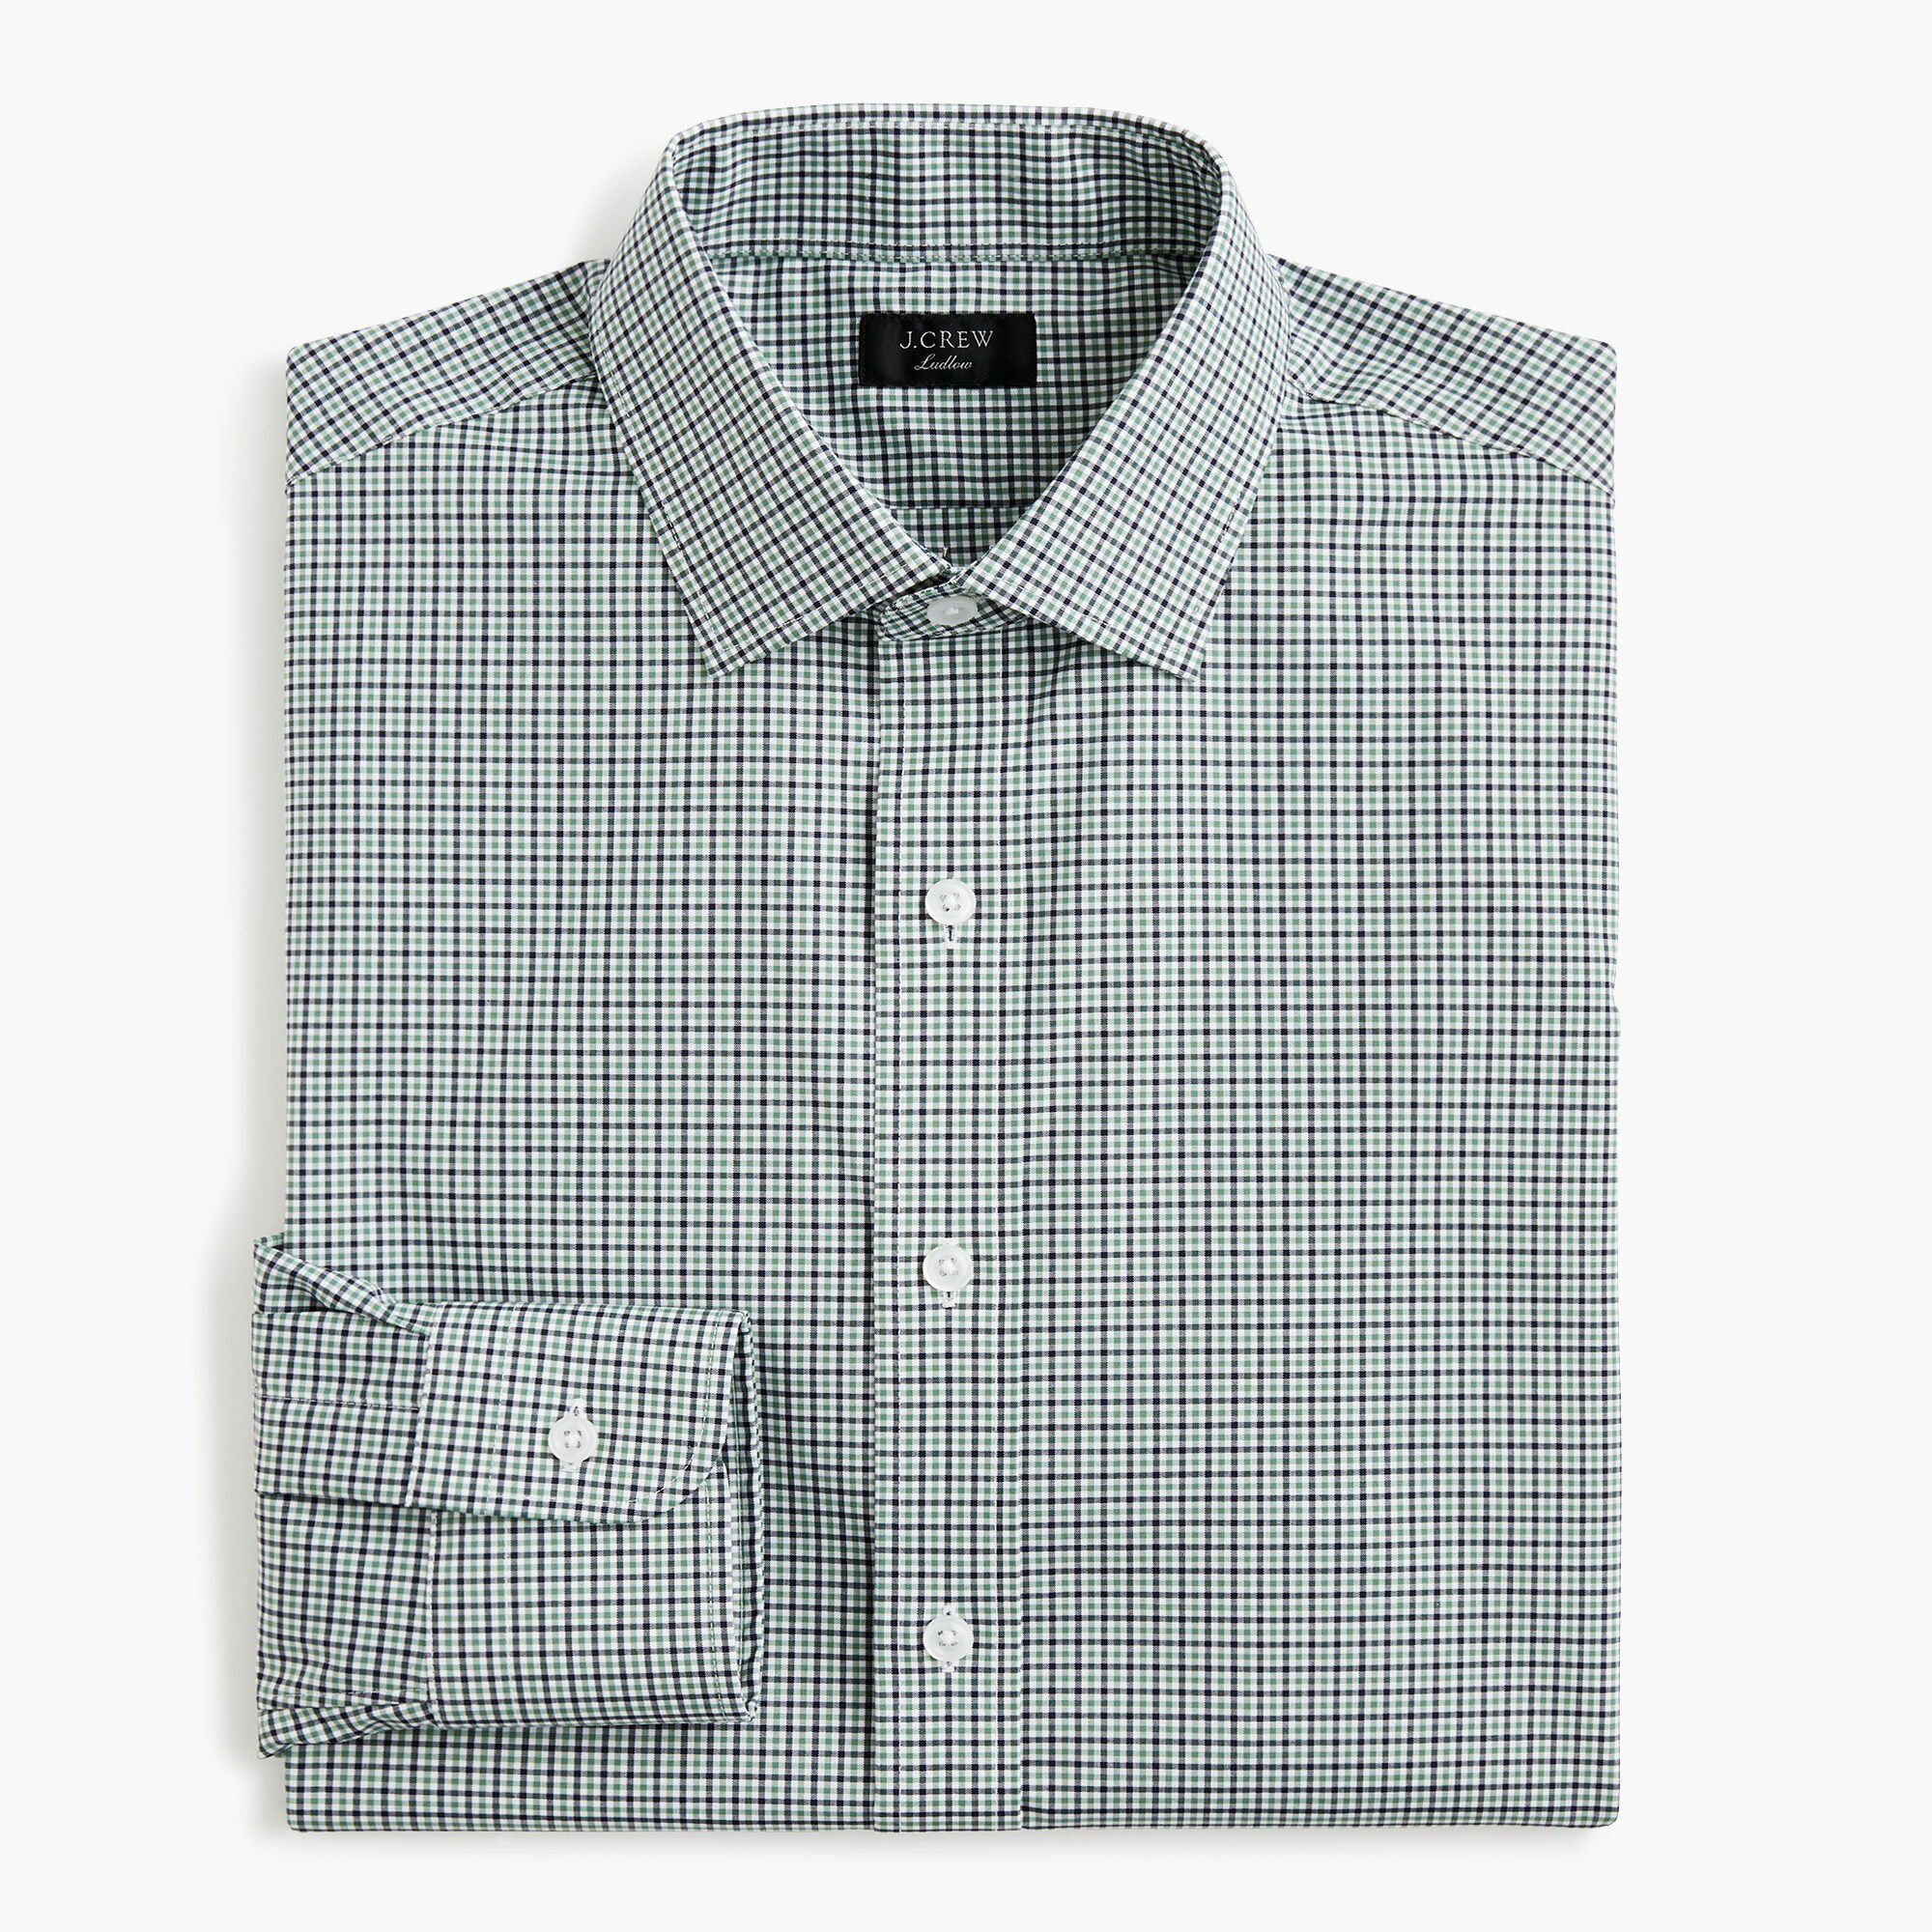 mens Ludlow stretch two-ply easy-care cotton dress shirt in blue tattersall